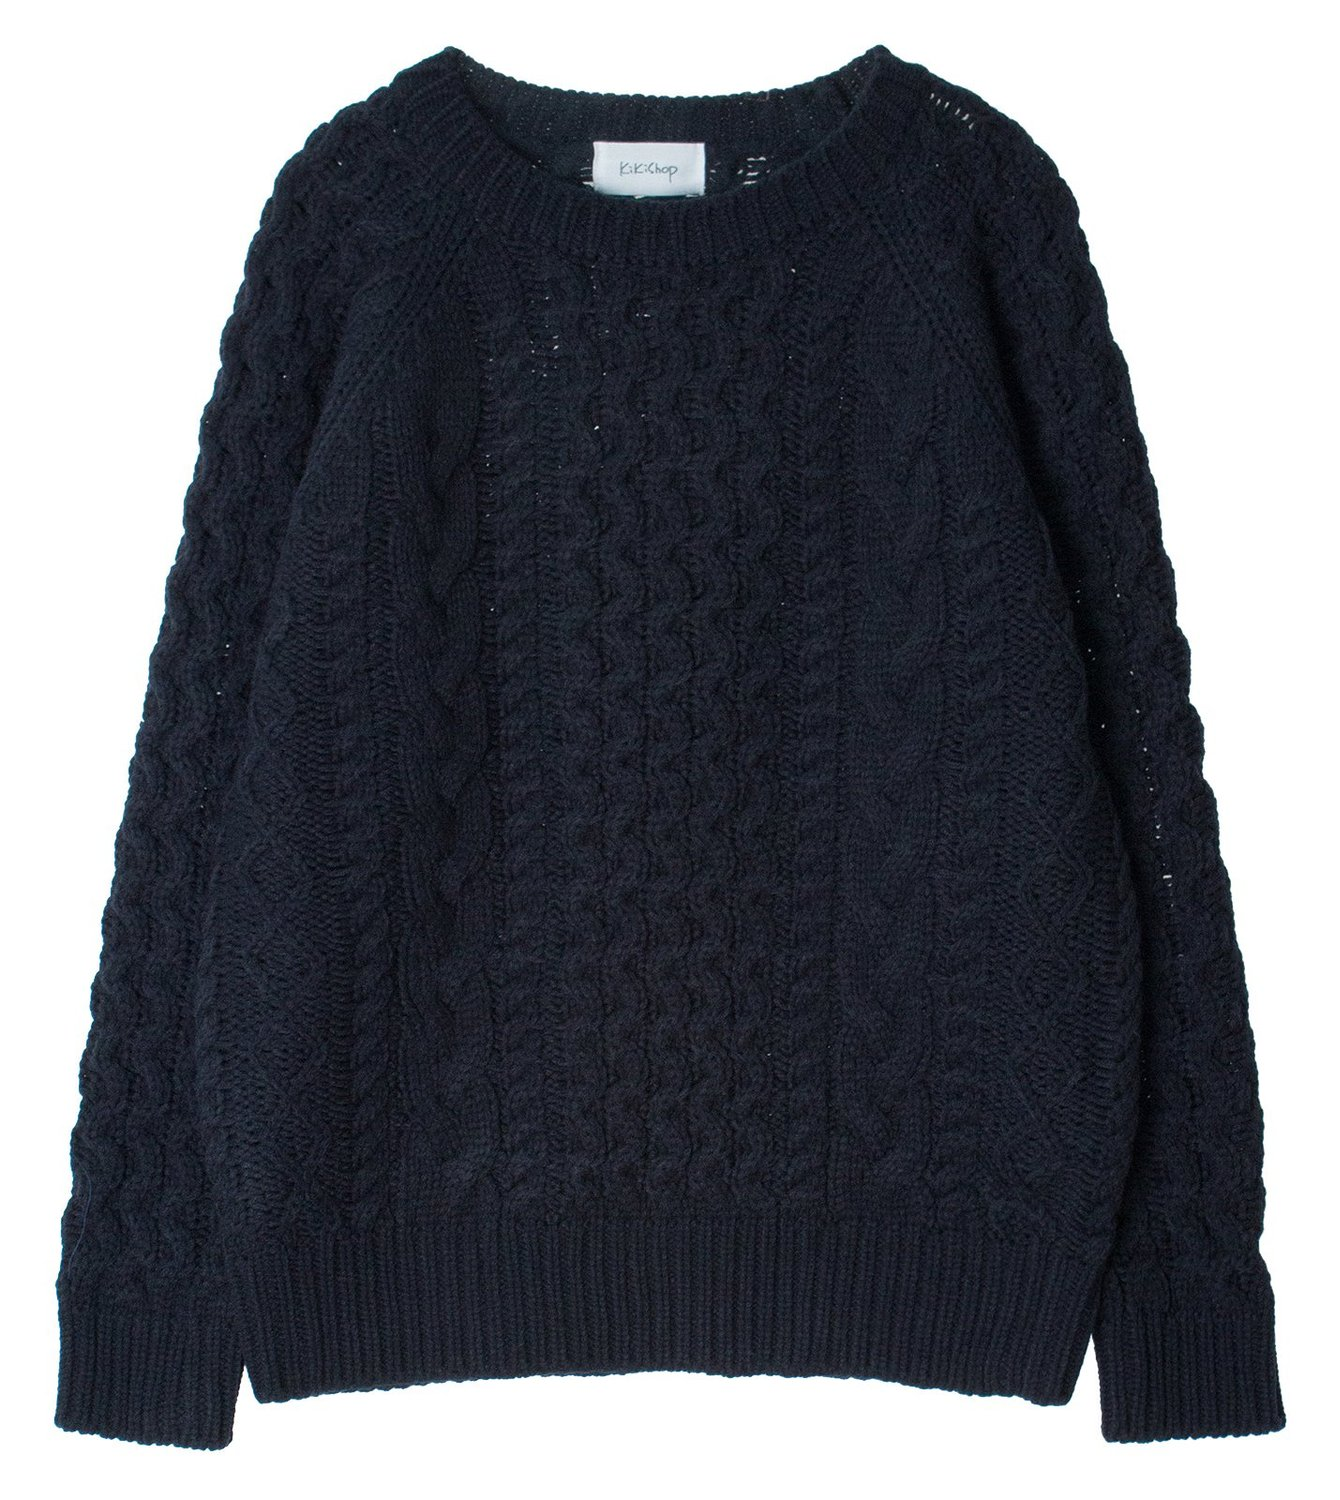 Chunky Cable Solid / Marled Knit Sweater Pullover S - M, Navy at ...